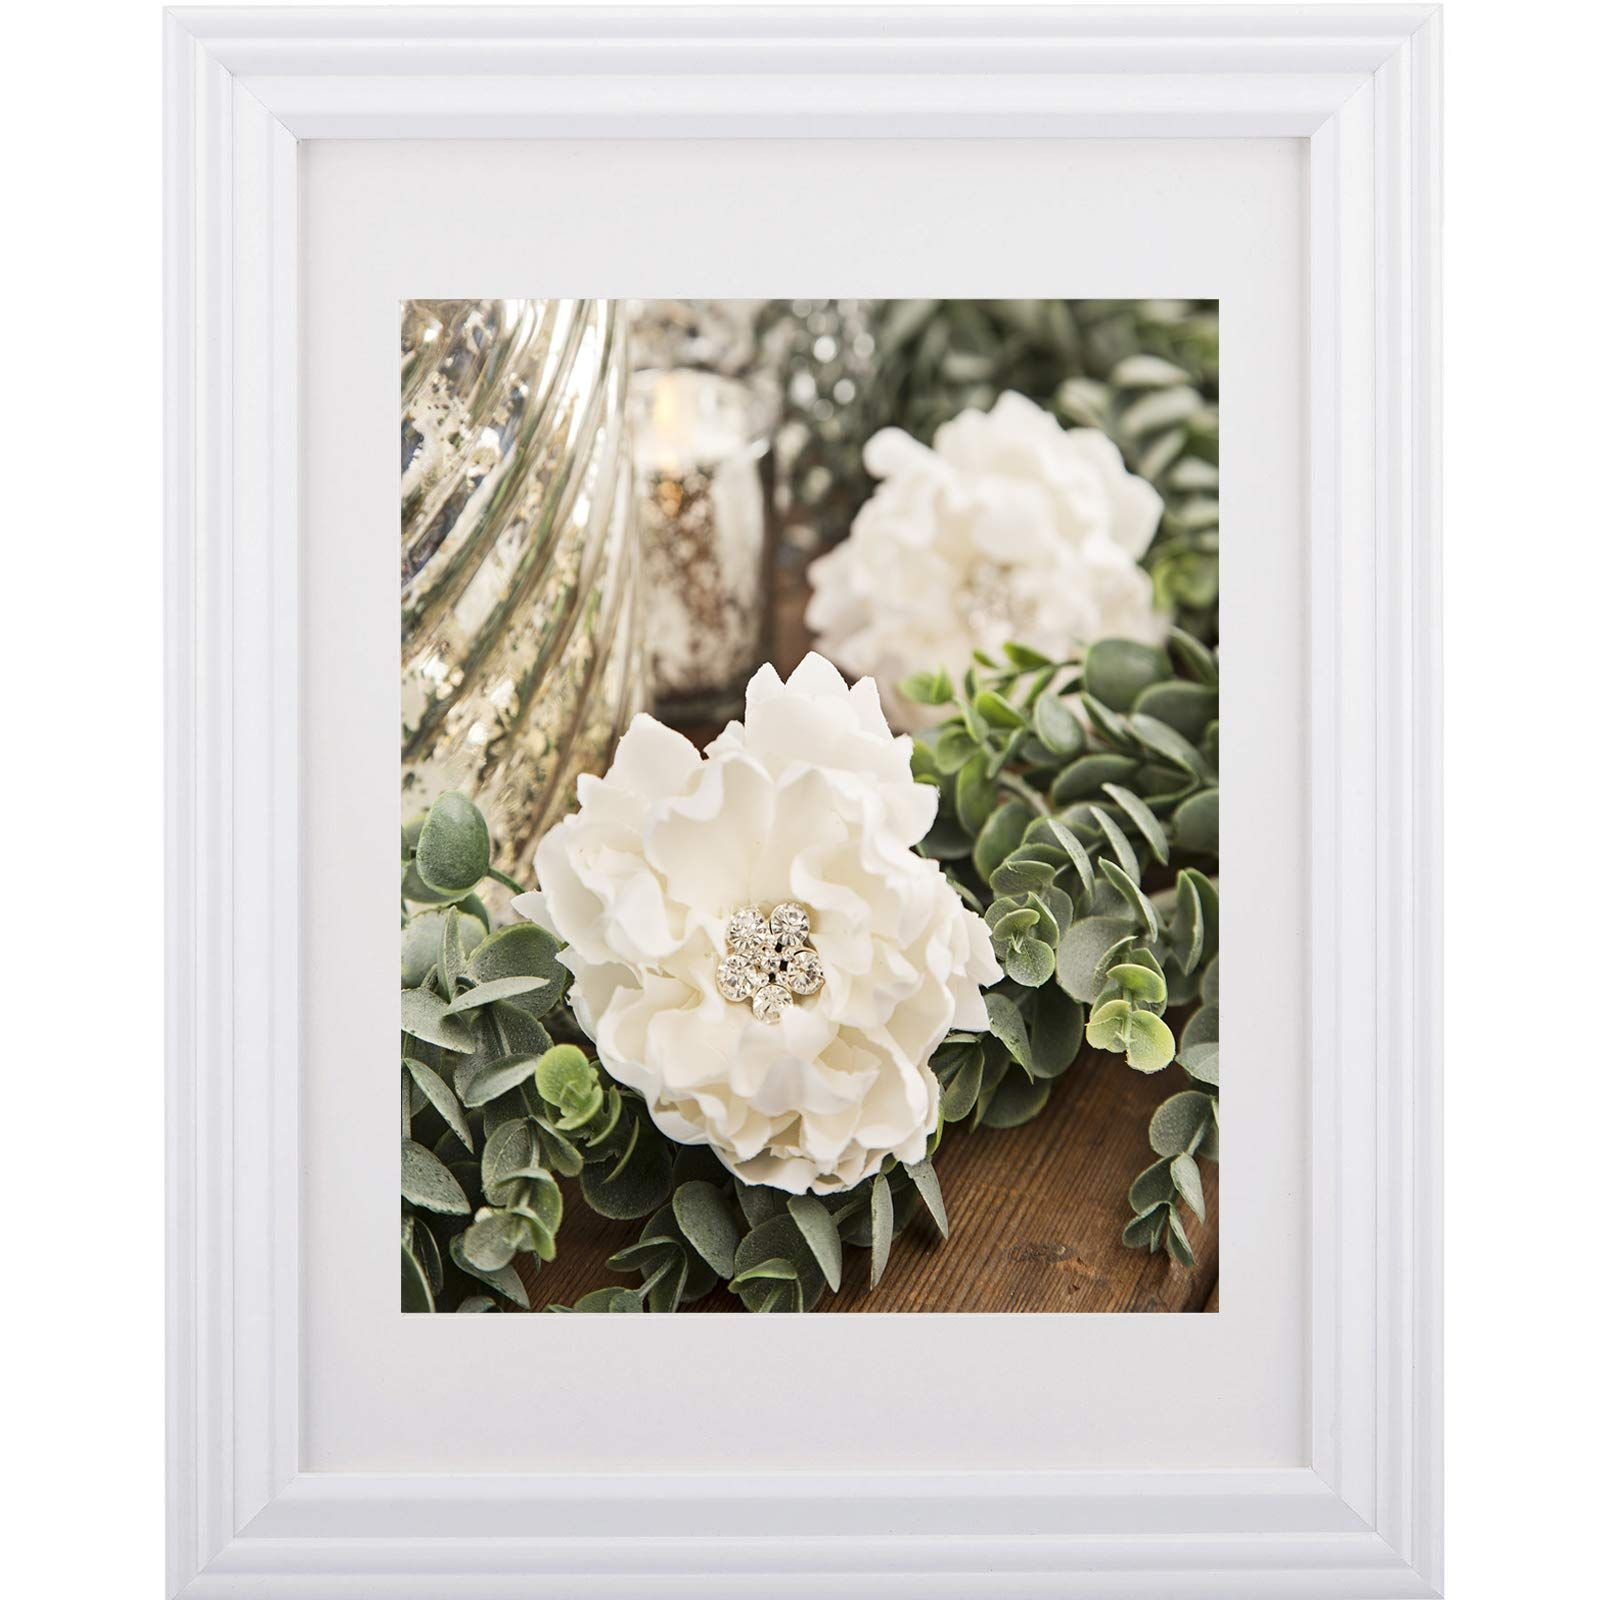 Studio Decor 10 X 13 Wall Picture Frame With White Mat 8 X 10 White In 2020